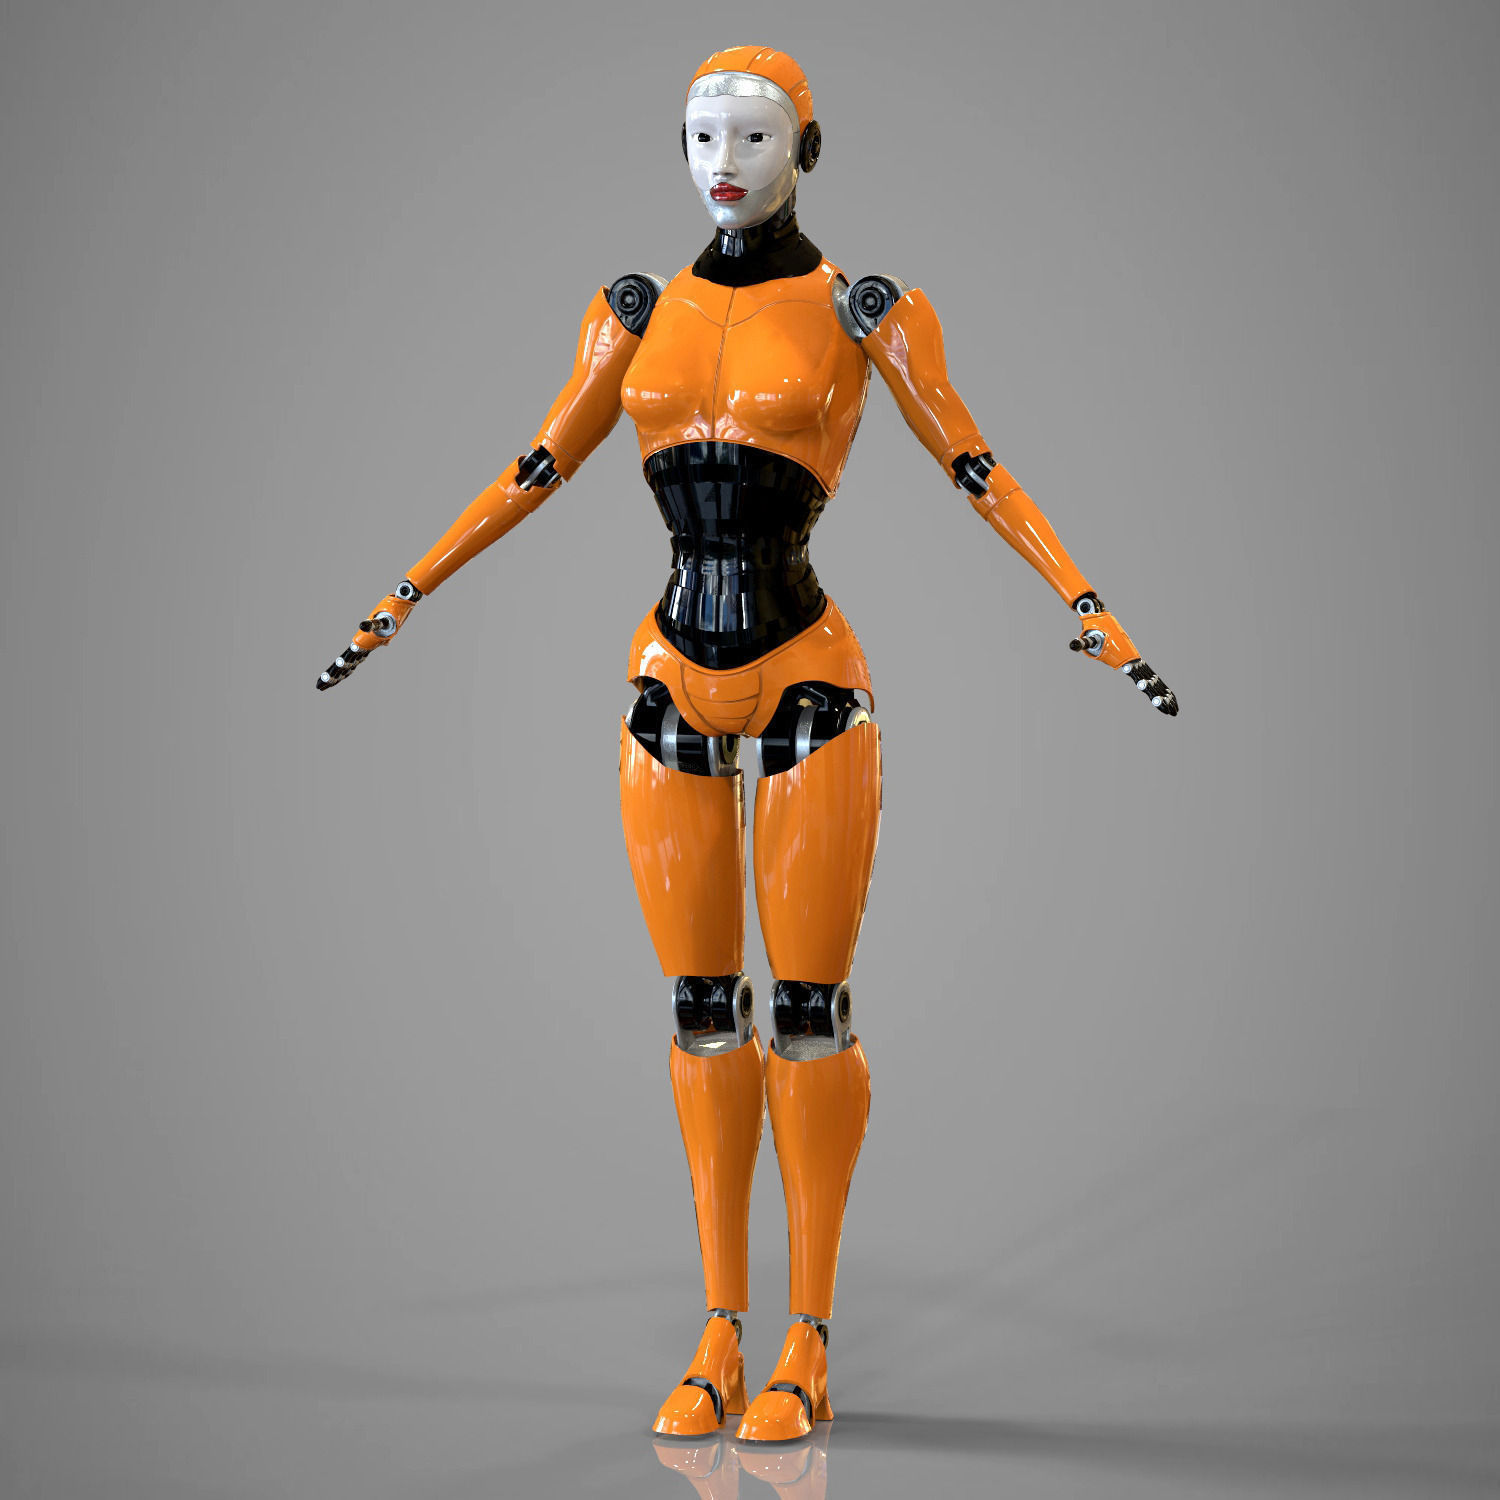 Robotic girl | 3D model